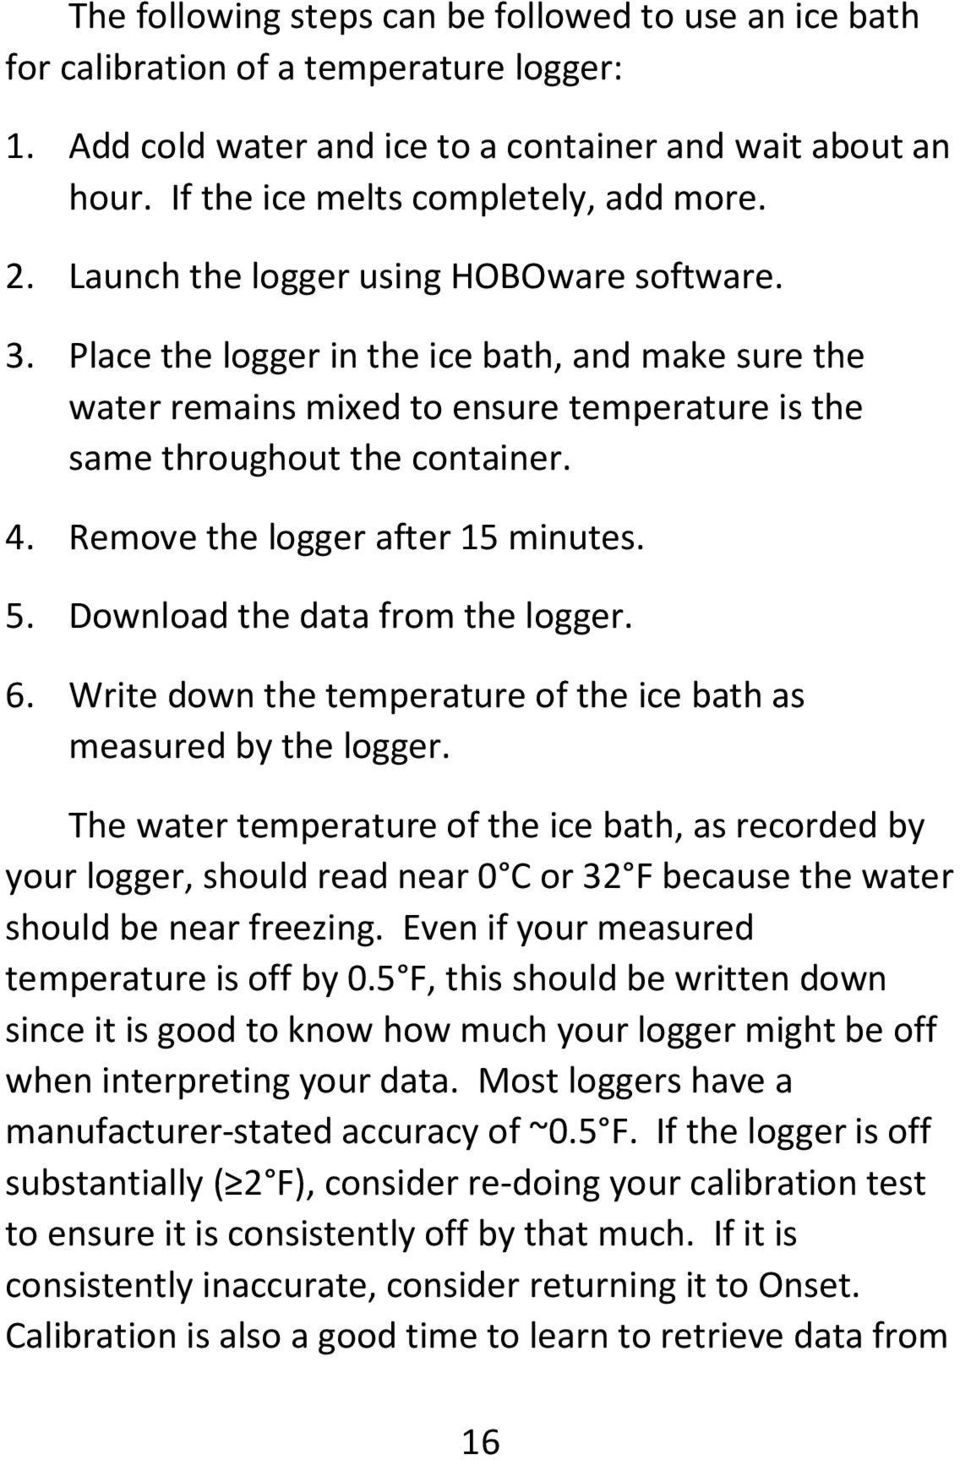 Remove the logger after 15 minutes. 5. Download the data from the logger. 6. Write down the temperature of the ice bath as measured by the logger.